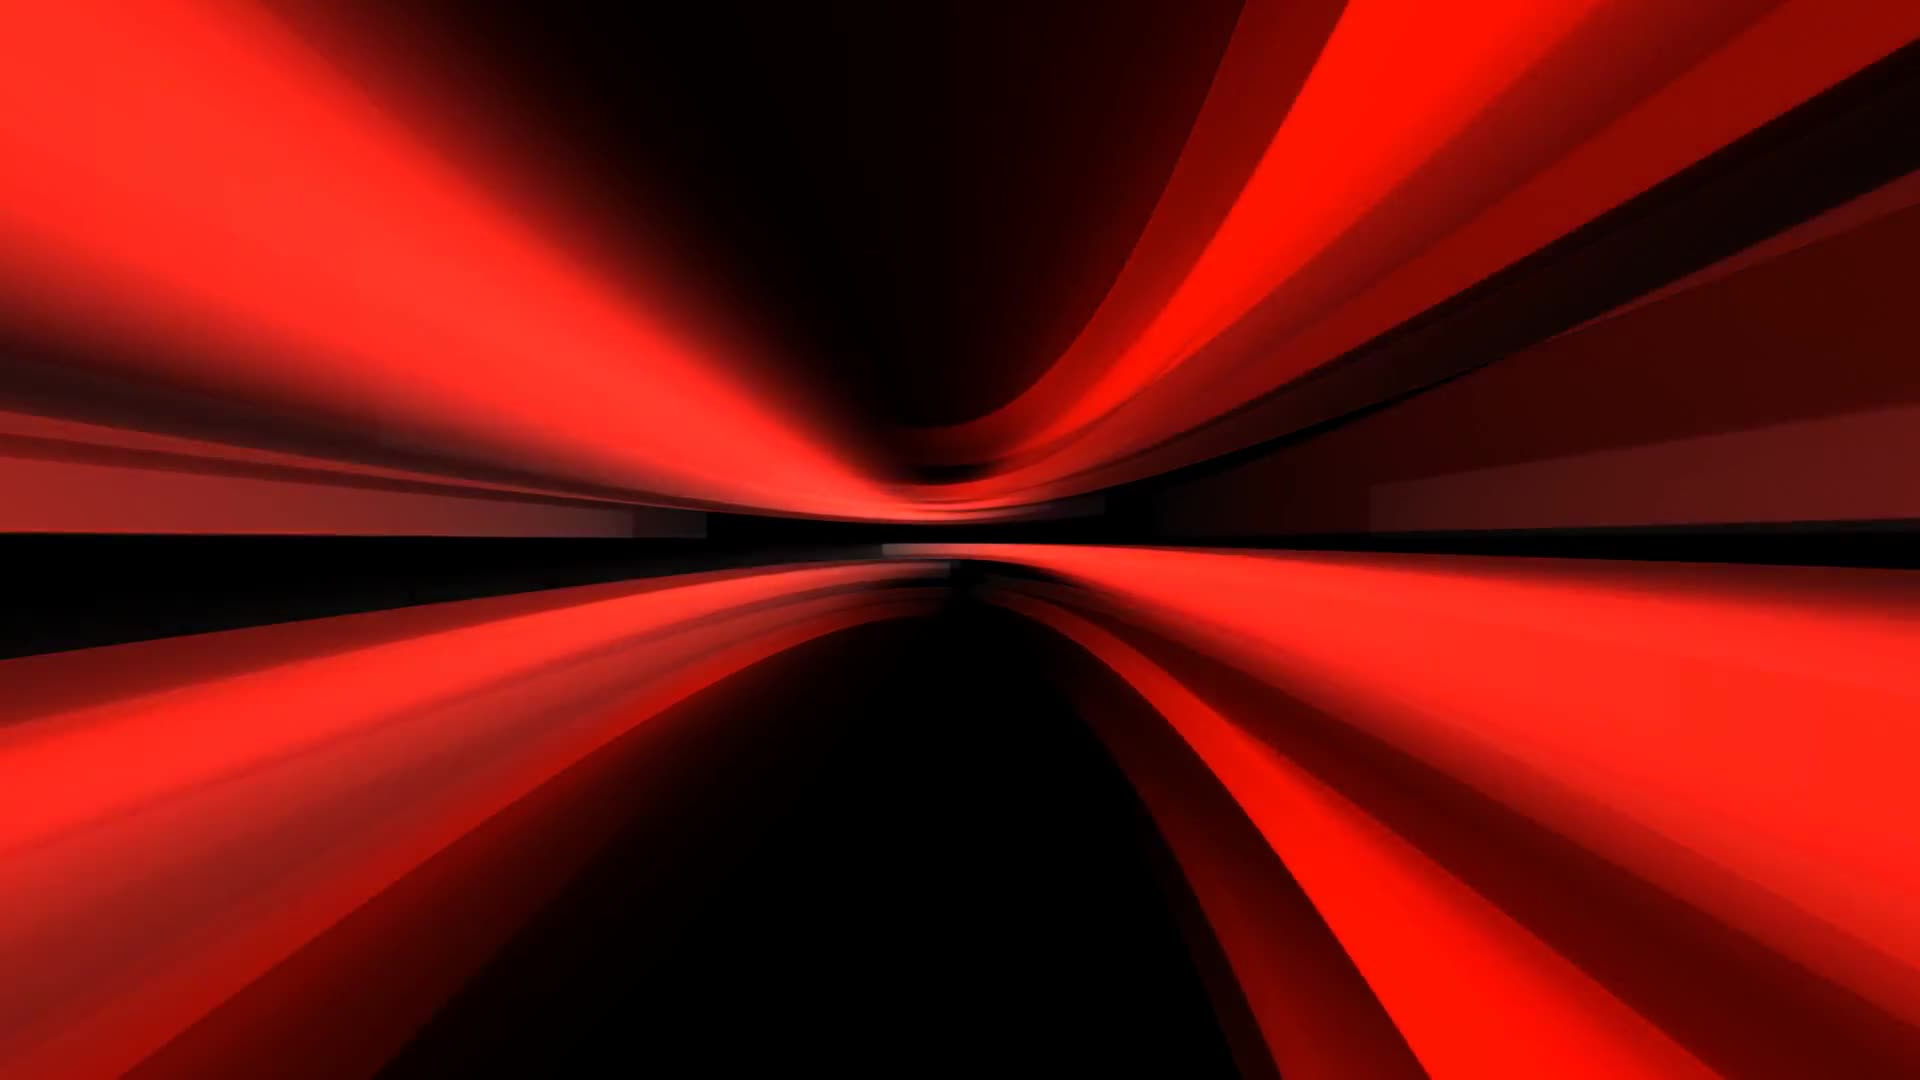 Lines red geometry abstract background